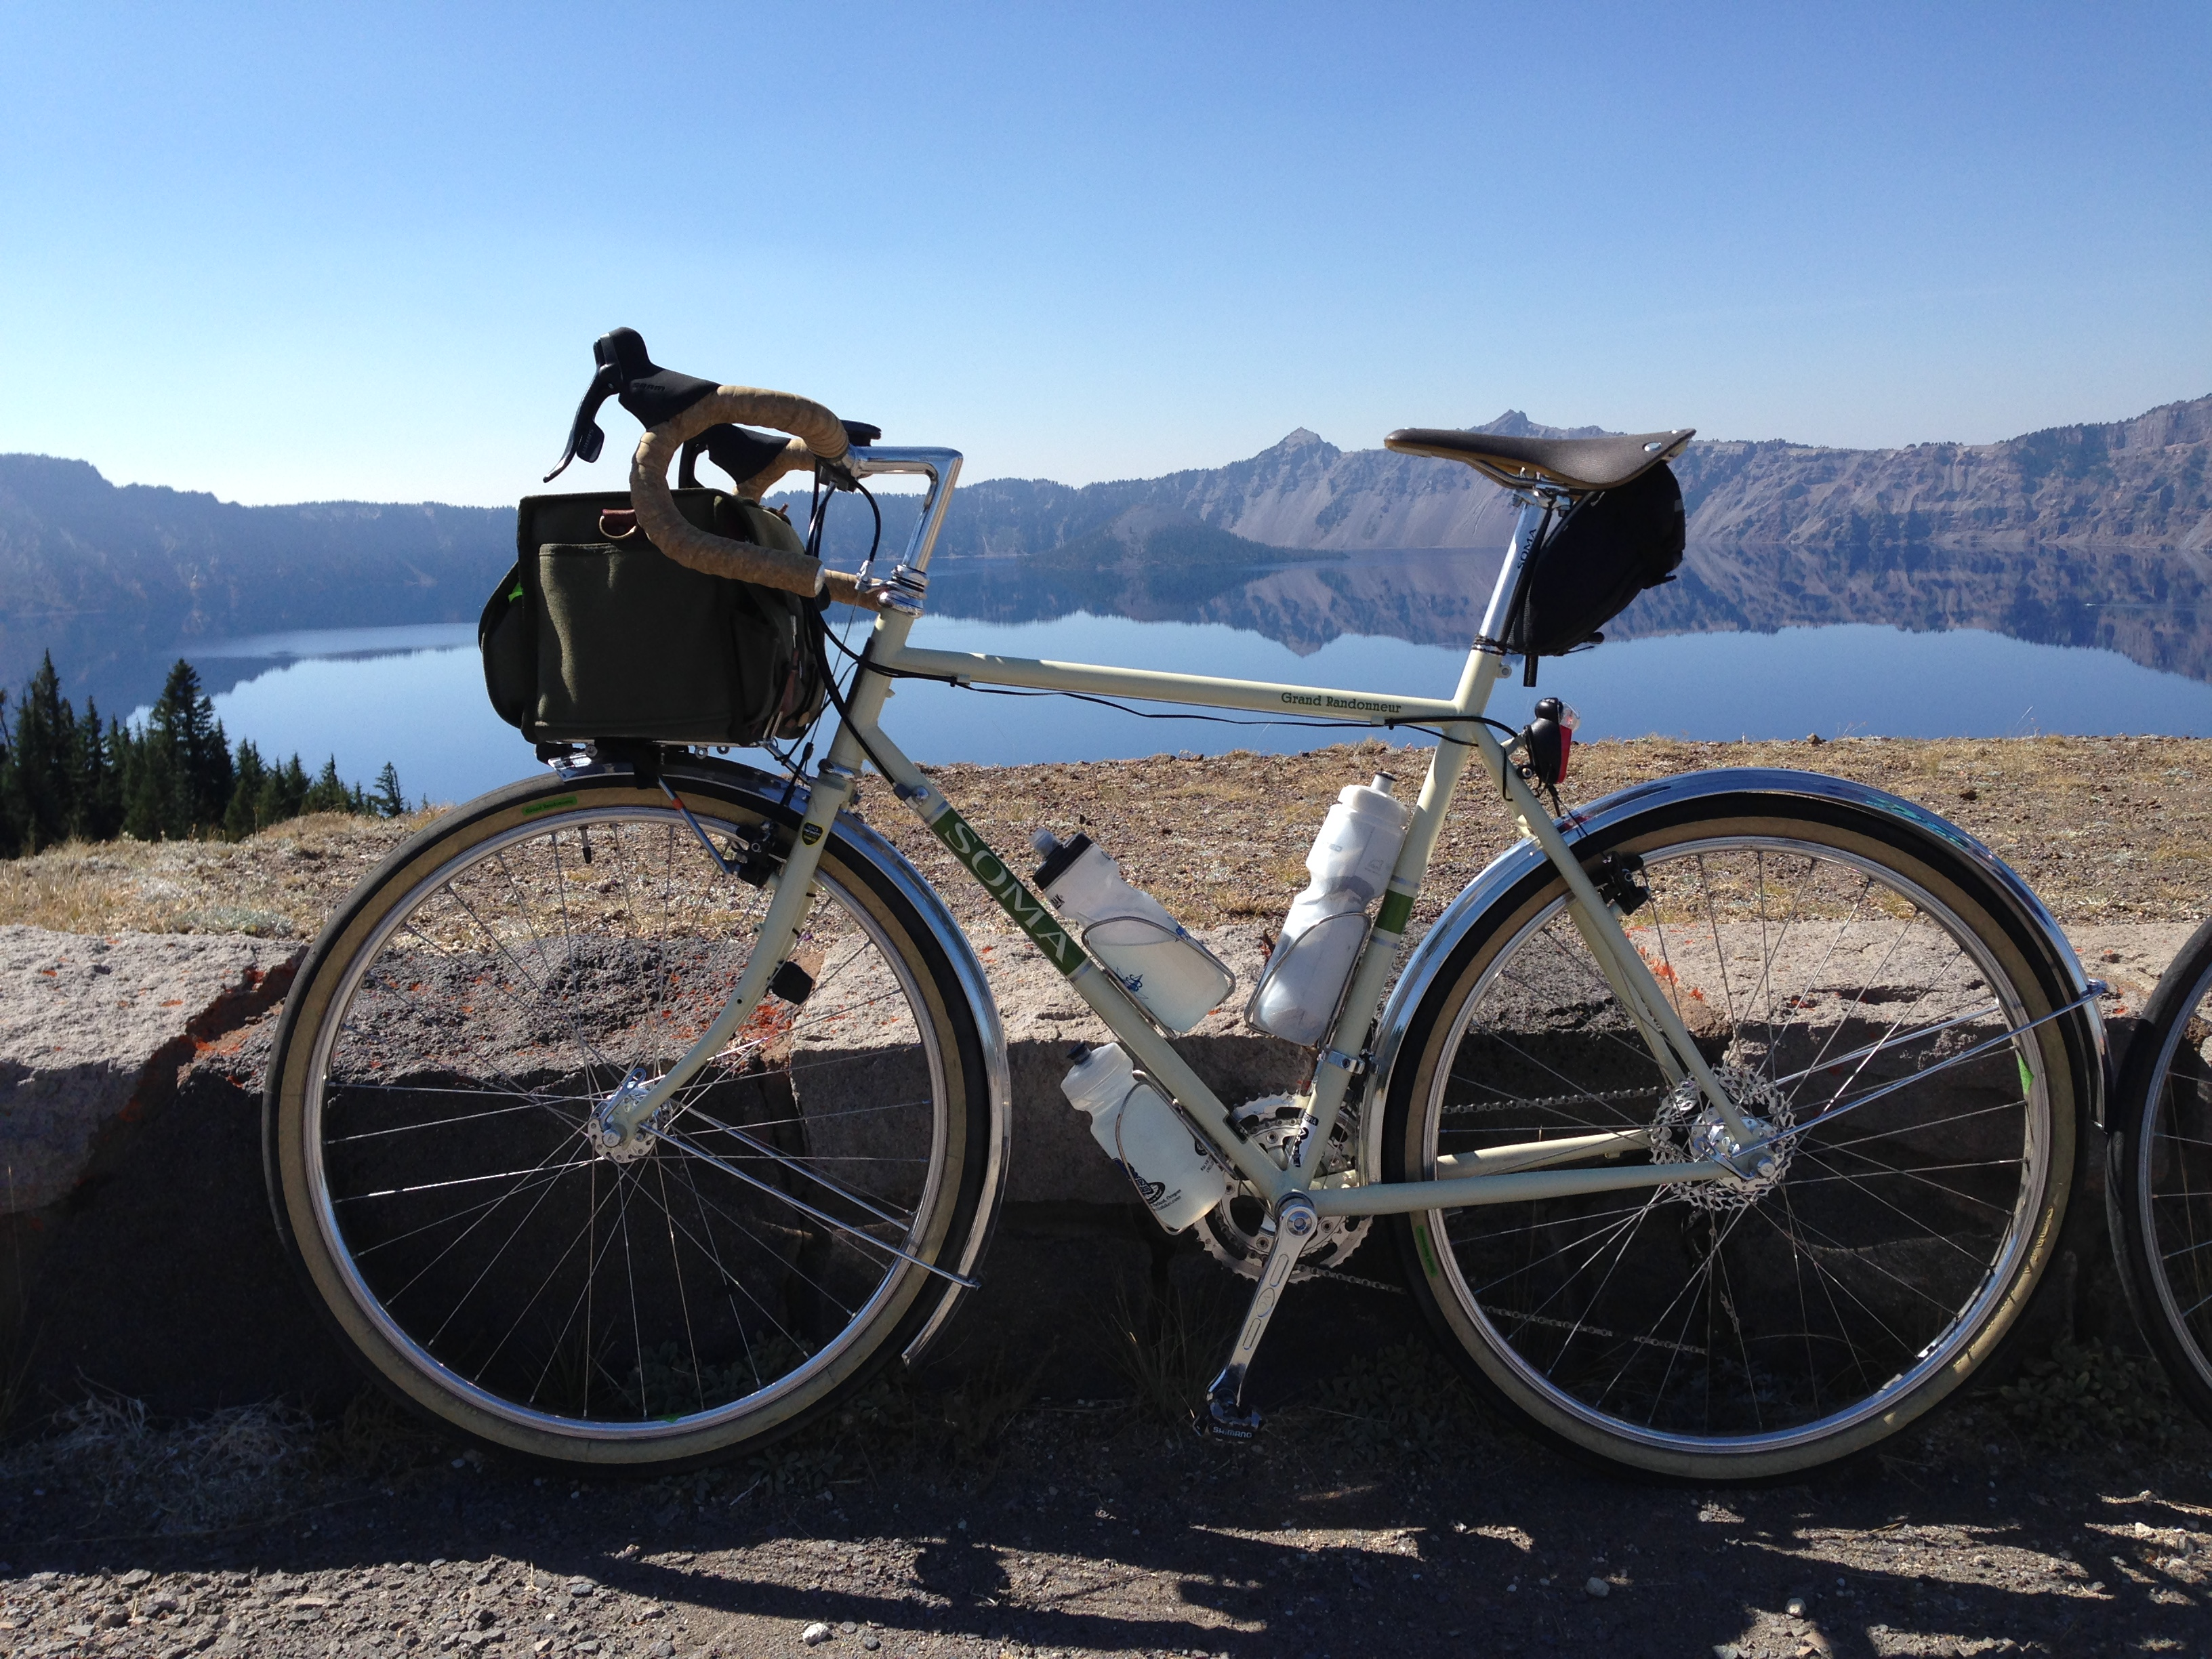 The Grando at Crater Lake